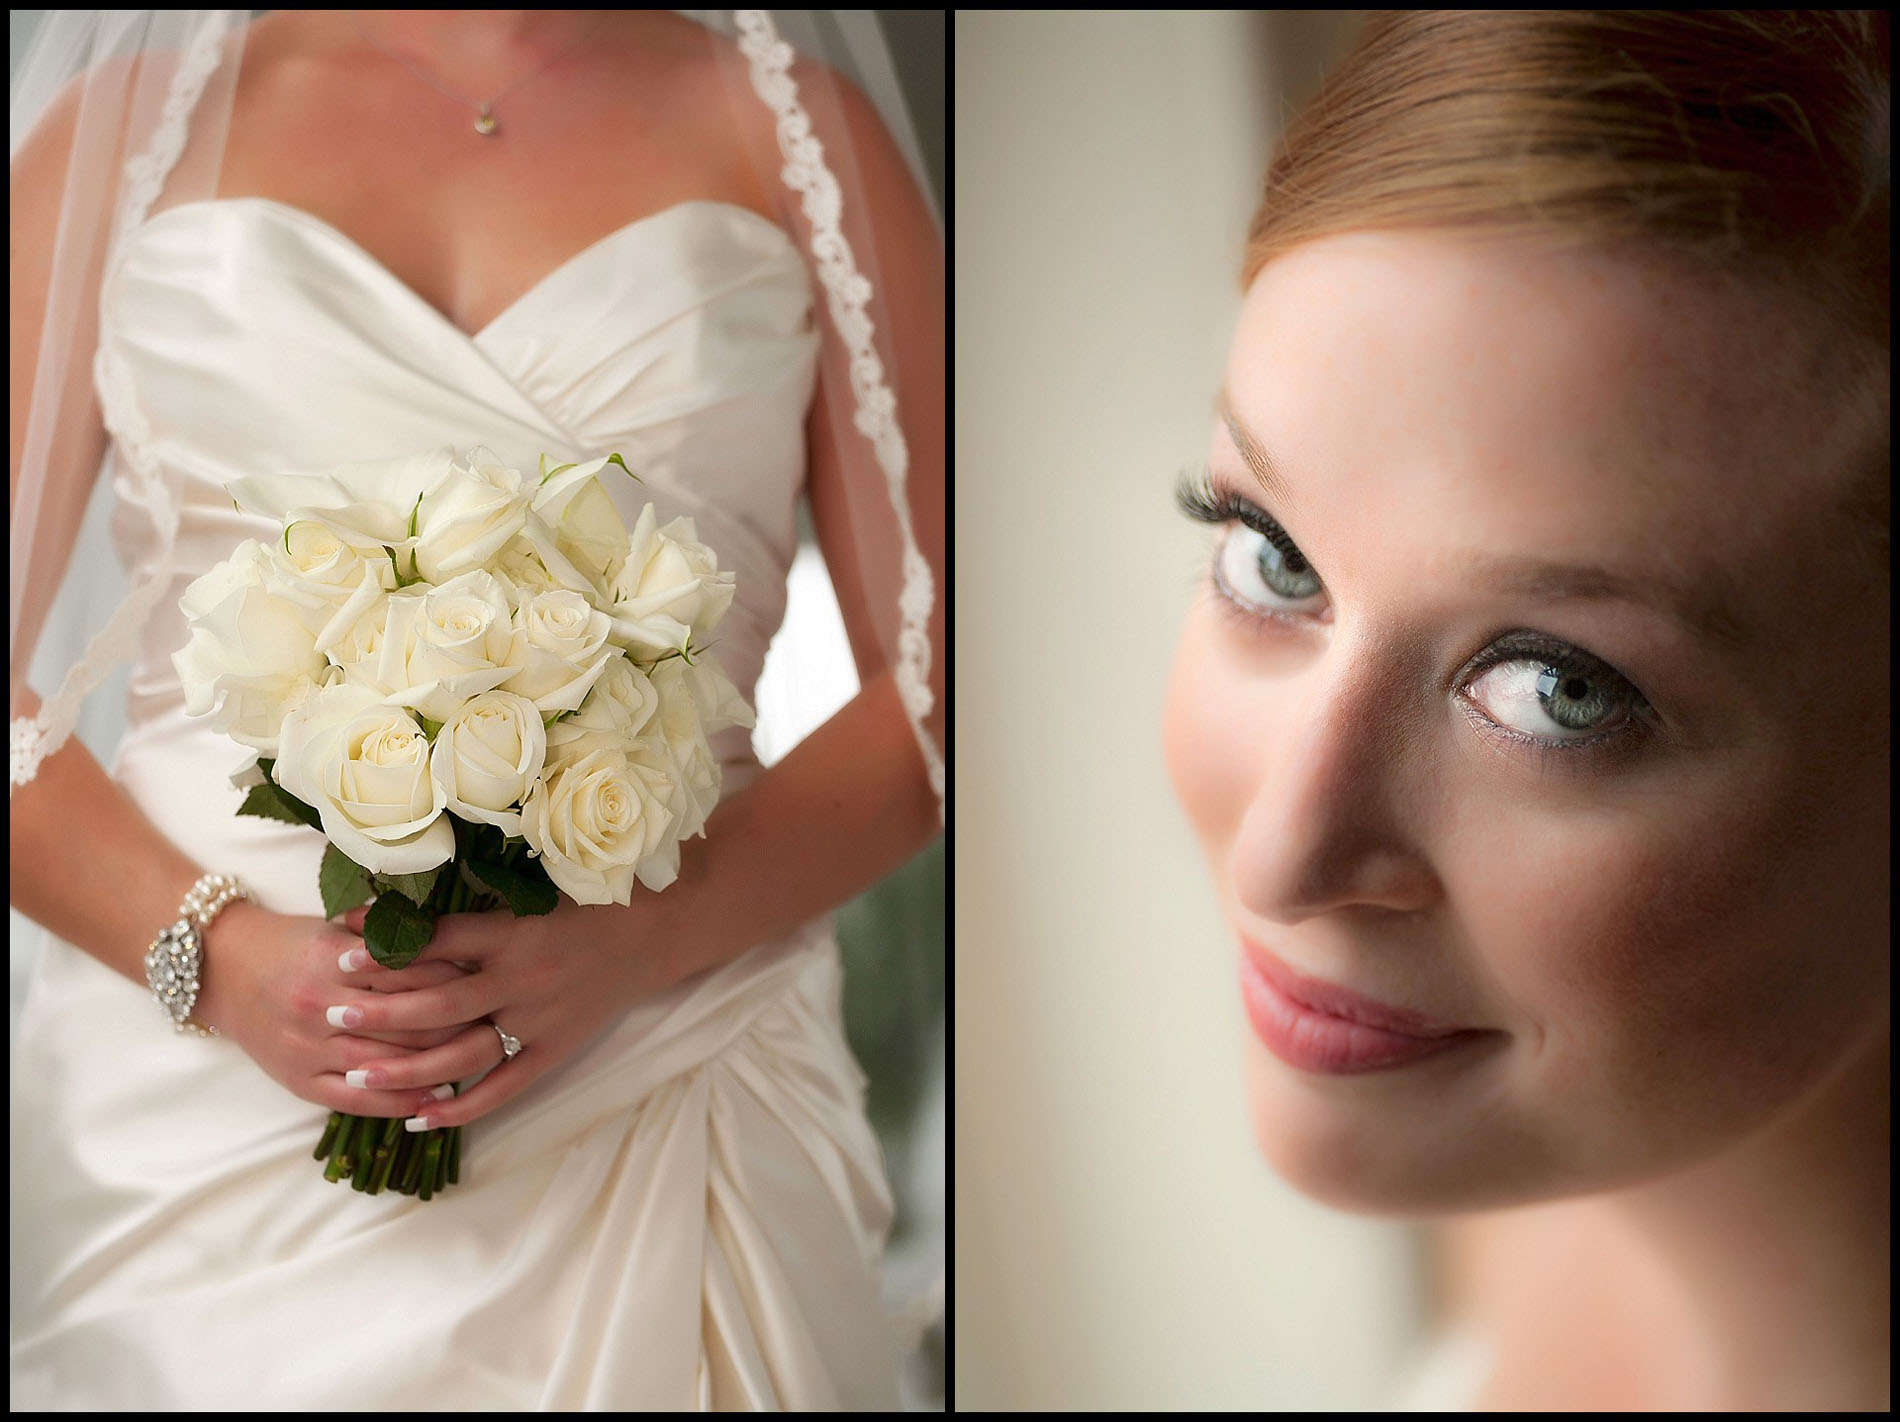 Favorite Wedding Pictures from Wentworth - bride photos